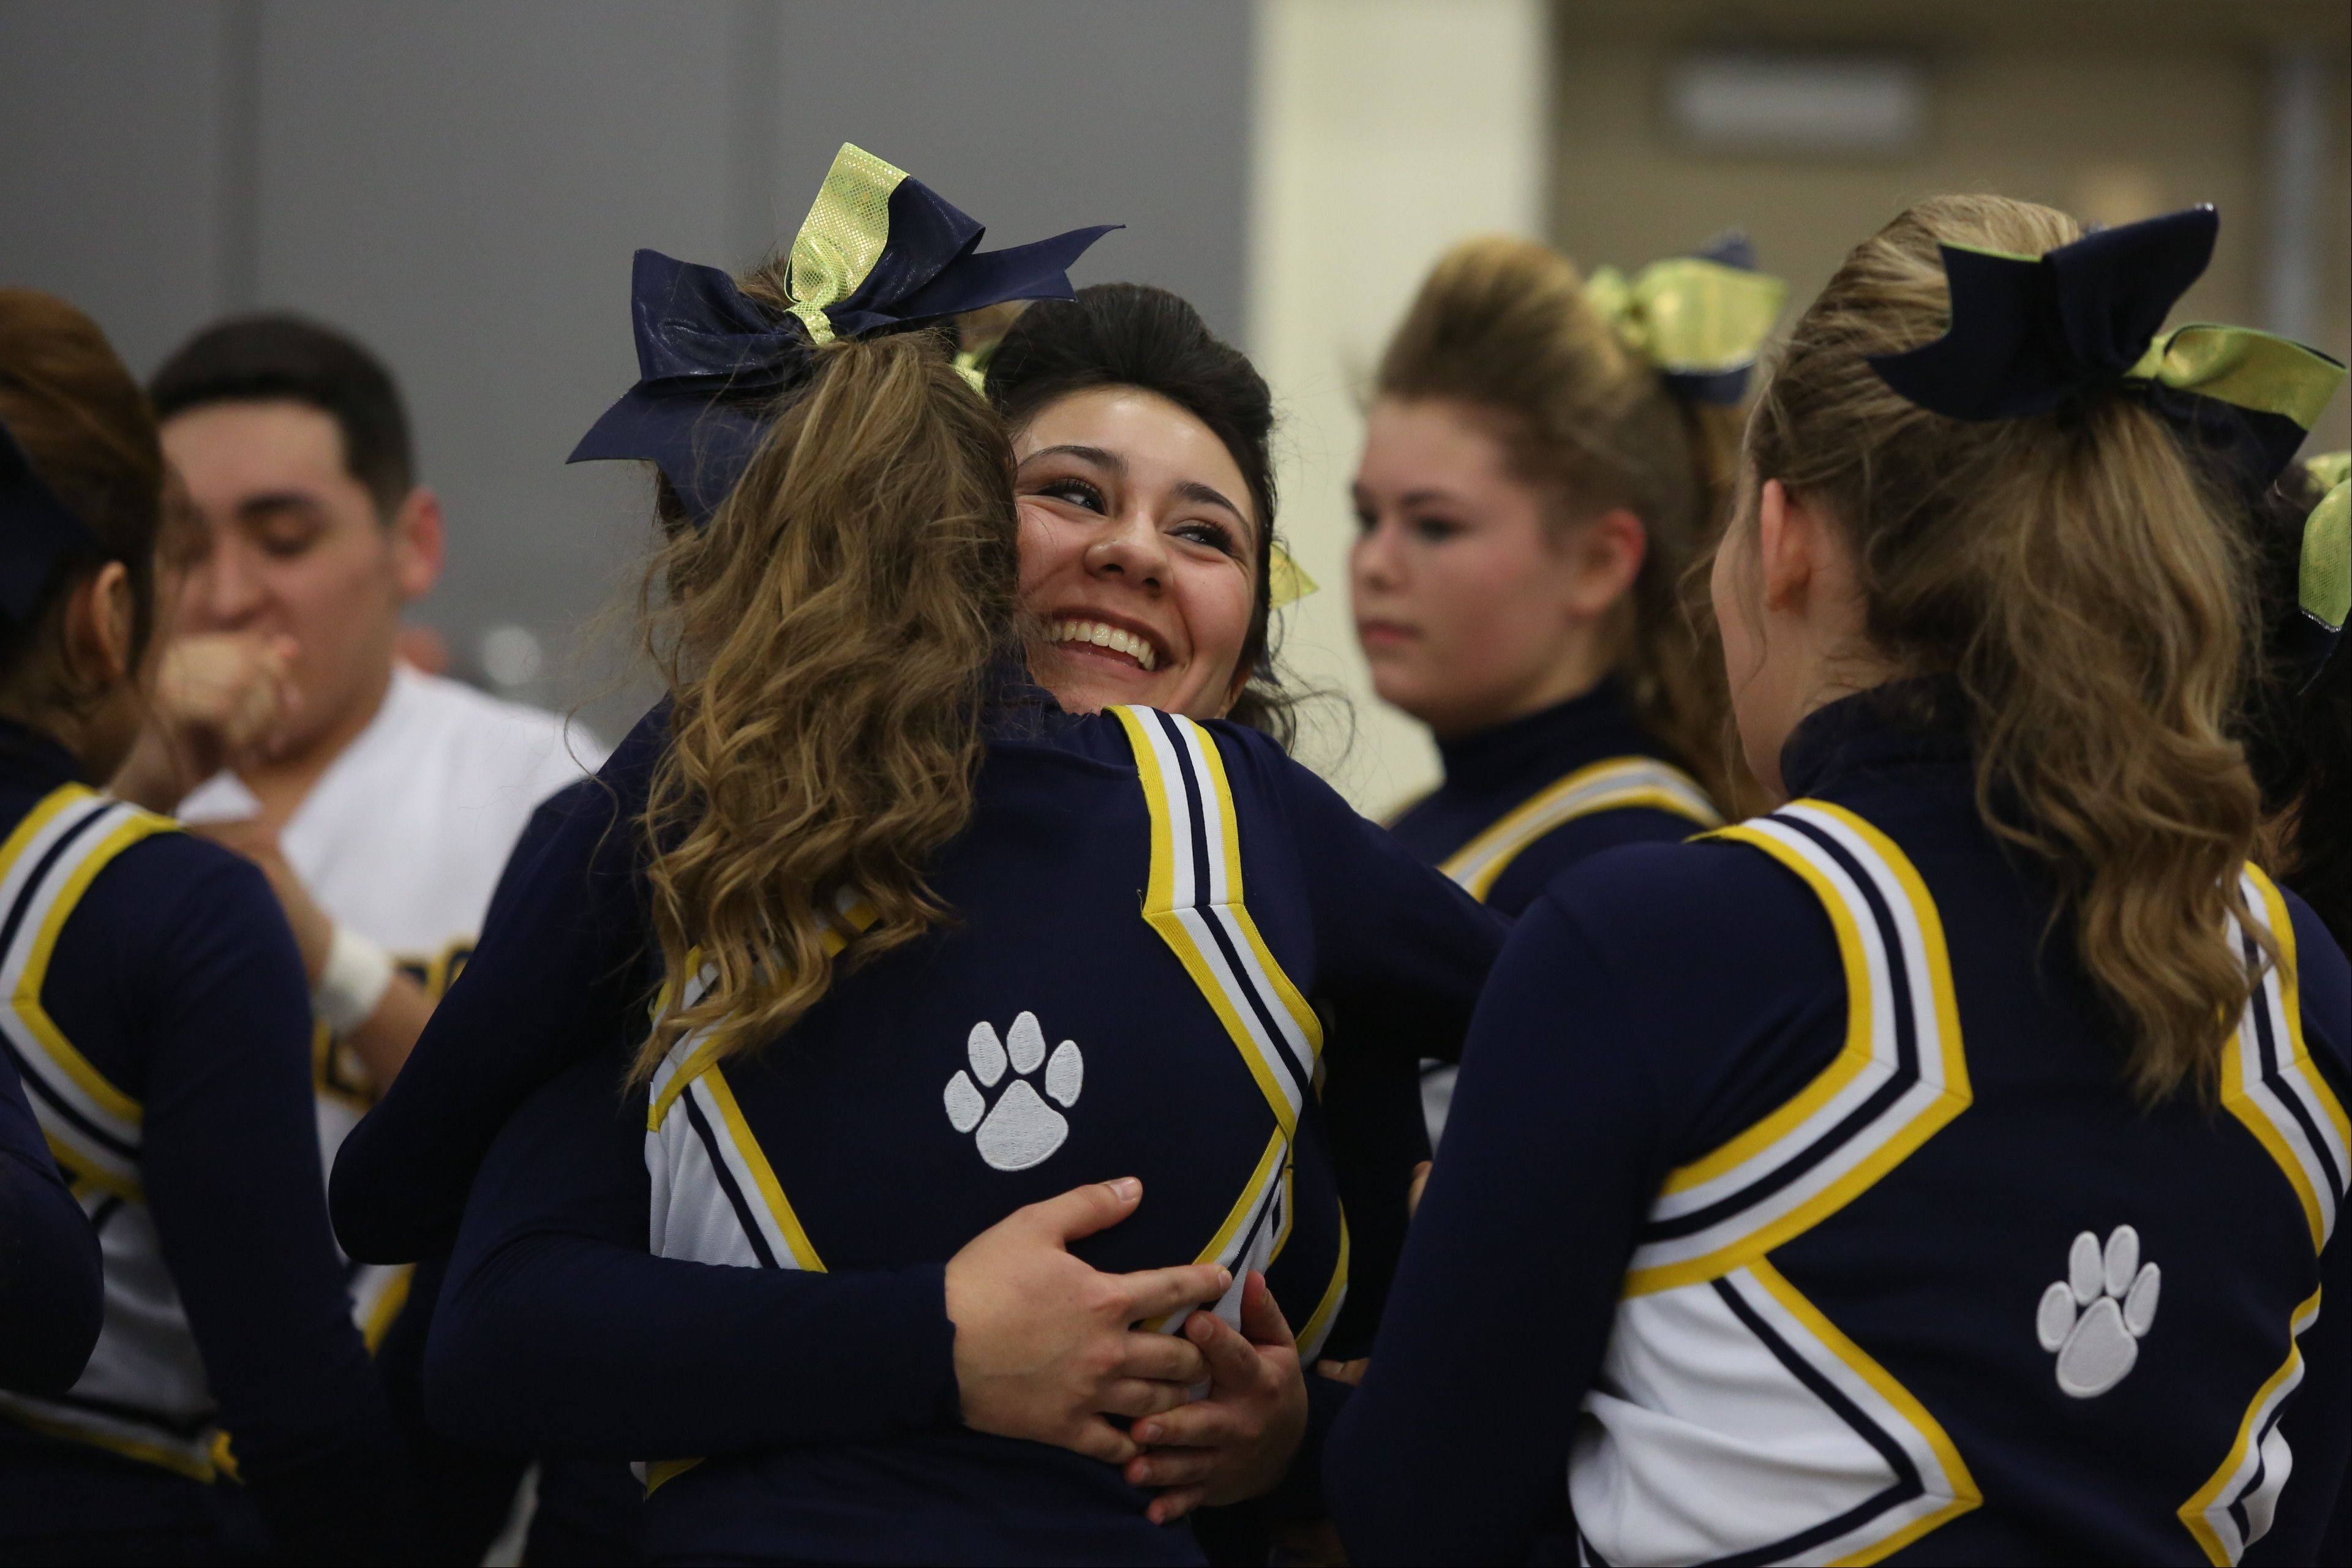 Round Lake High School cheerleaders hug after competing in the Large Team category during the IHSA Cheerleading Sectional Sunday hosted by Grayslake North High School.